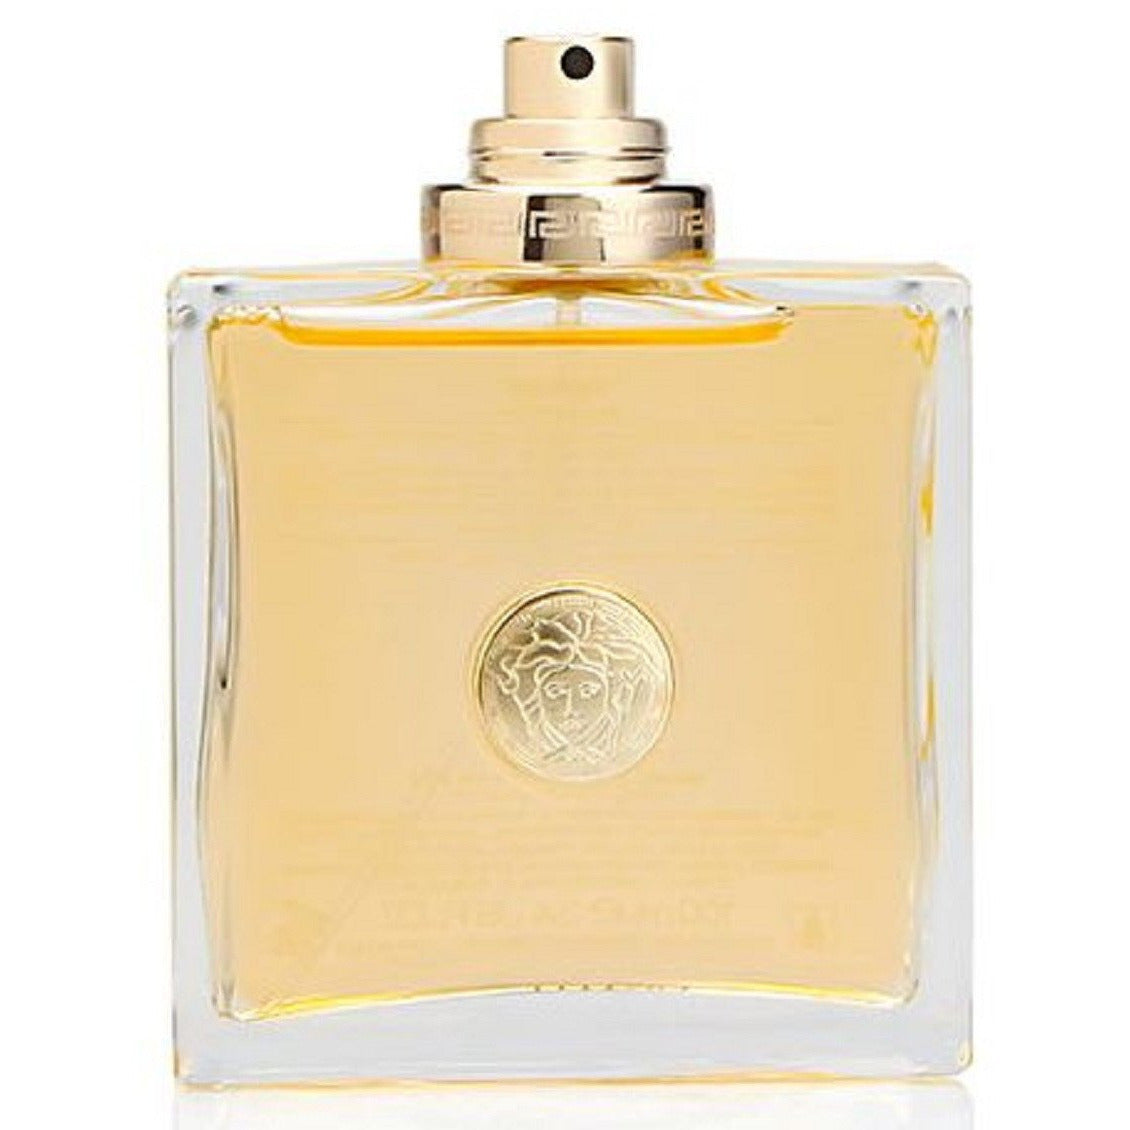 versace-pour-femme-by-gianni-versace-for-women-edp-3-4-oz-3-3-new-tester